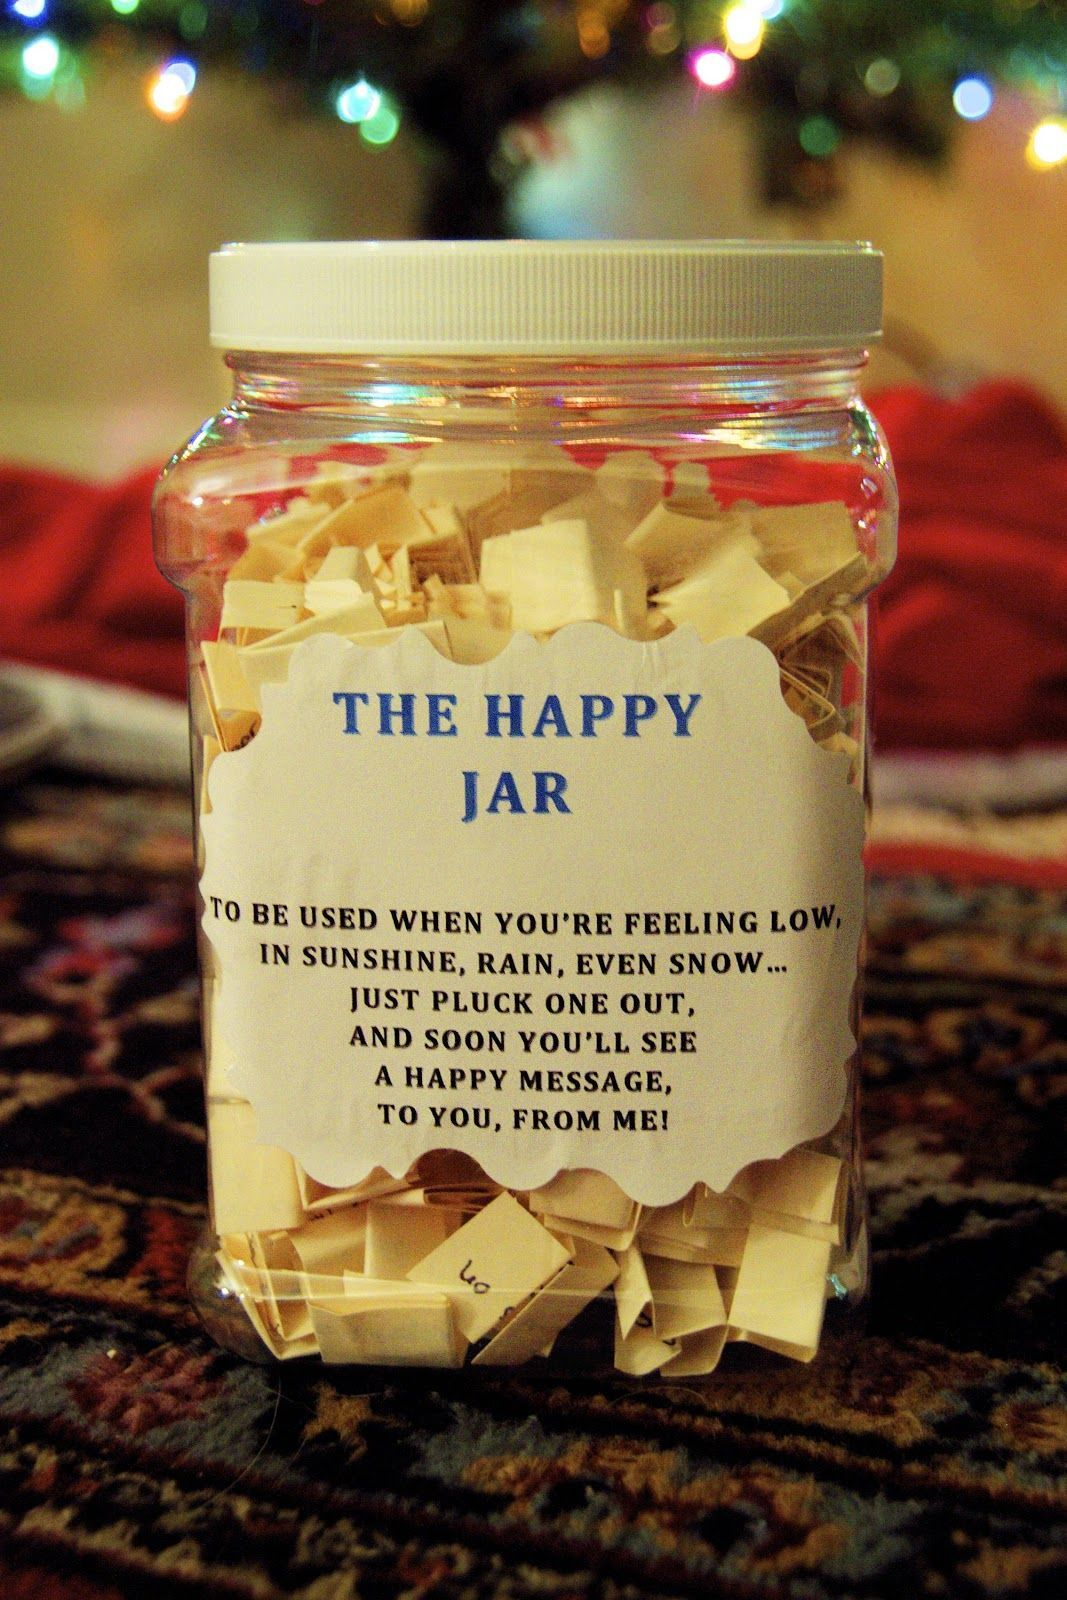 bade5880f533 A homemade jar of individual sentiments on paper designed to cheer up a  faraway loved one. Could make one up for a child who is a hesitant  sleepaway camper ...